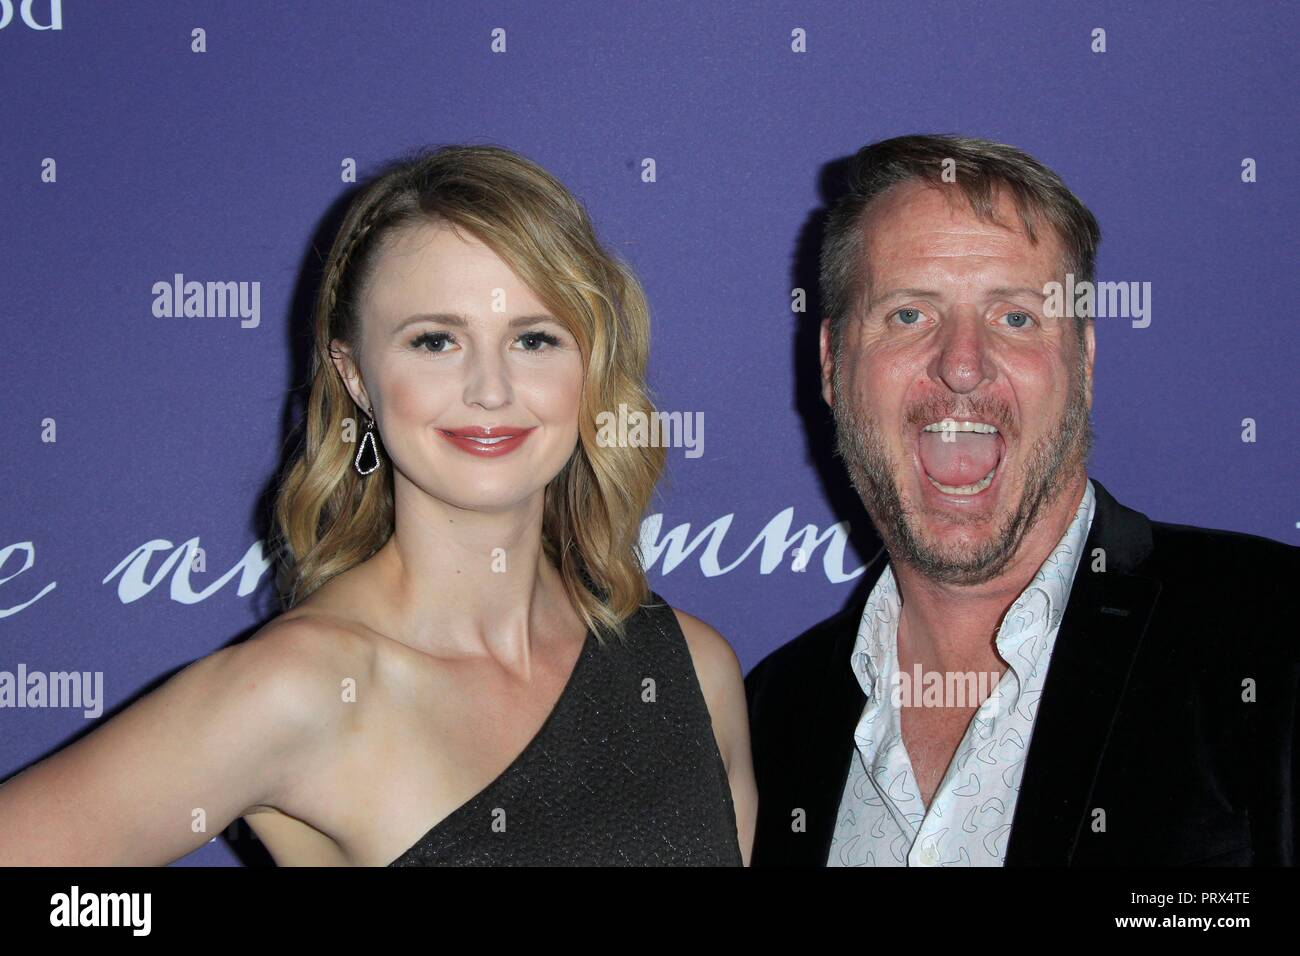 Los Angeles, CA, USA. 4th Oct, 2018. Madeline Jorgensen, Brent Jorgensen at arrivals for JANE AND EMMA Premiere, ArcLight Theater, Los Angeles, CA October 4, 2018. Credit: Priscilla Grant/Everett Collection/Alamy Live News - Stock Image